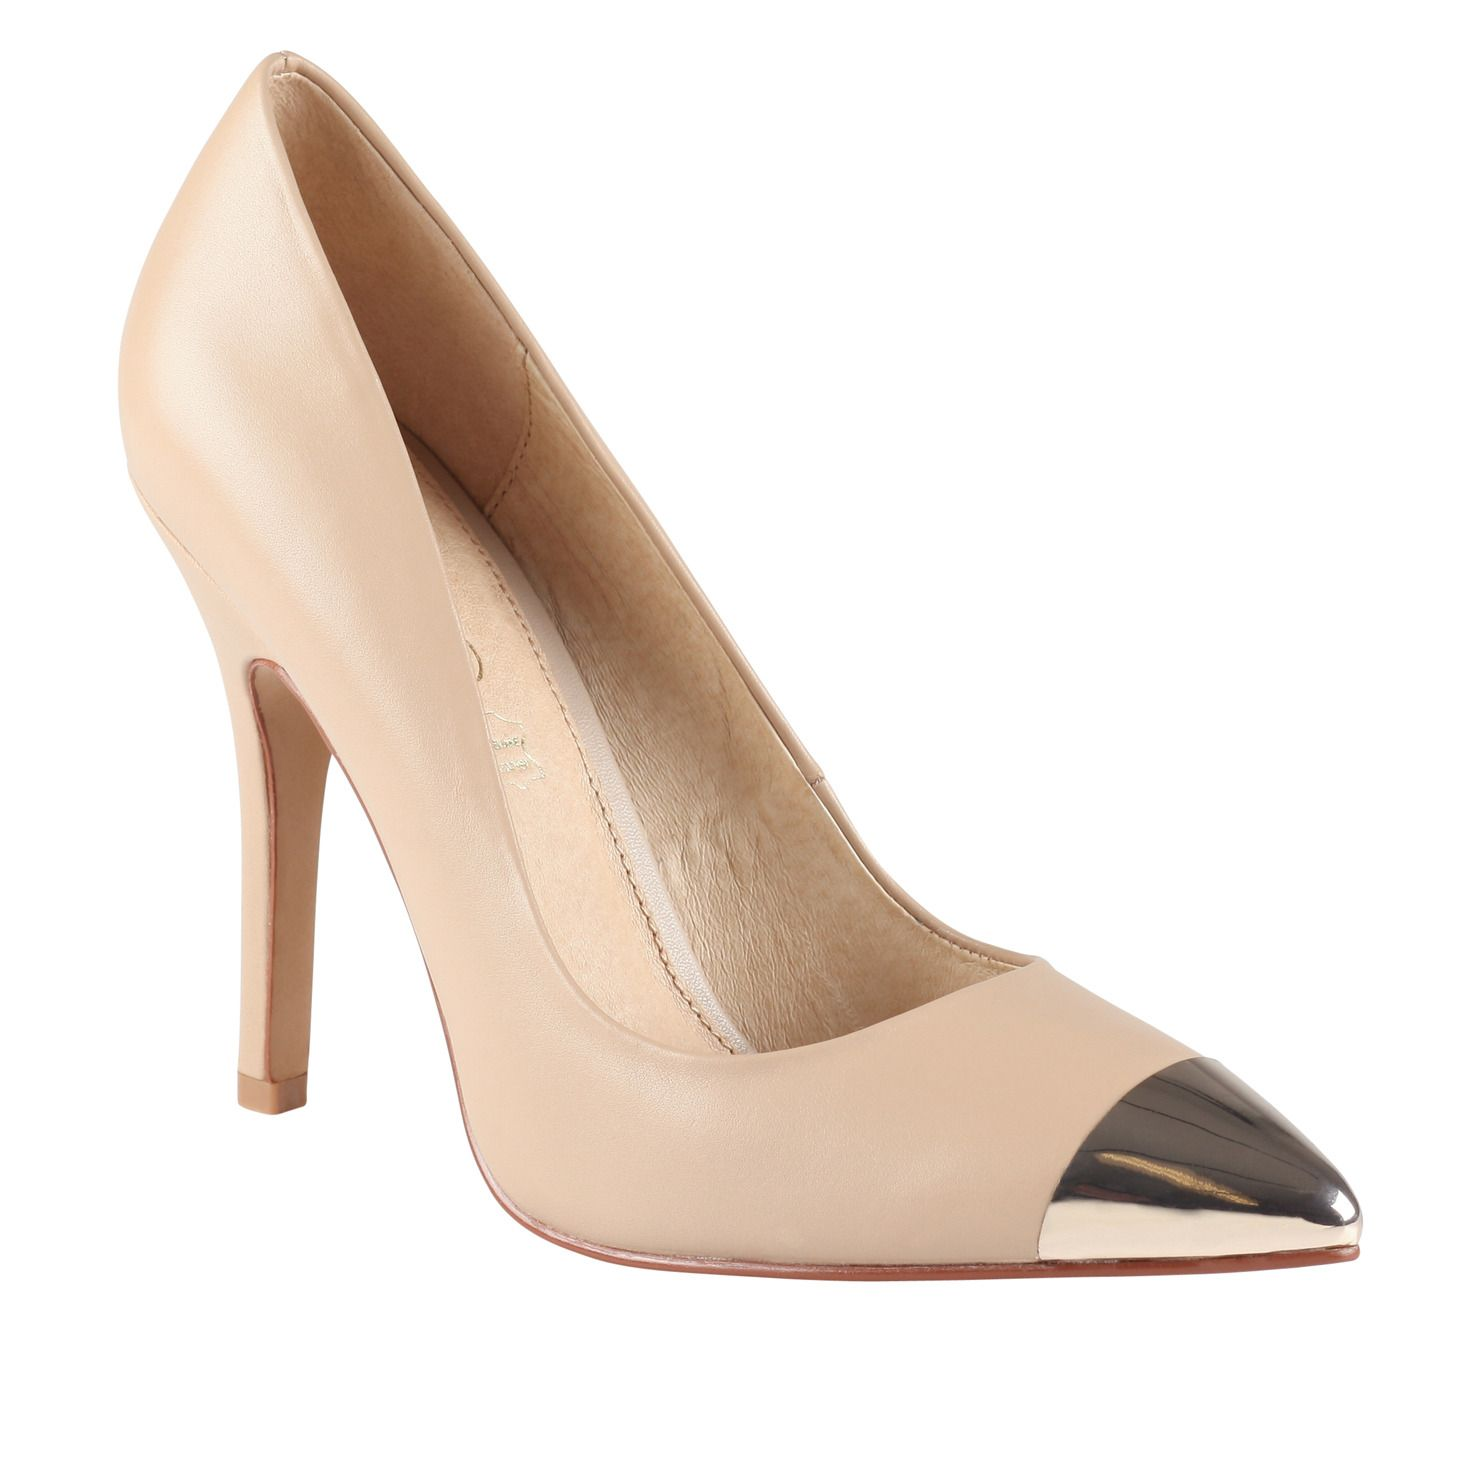 Essi Women S High Heels Shoes For Sale At Aldo Shoes Heels Womens Shoes High Heels Womens High Heels